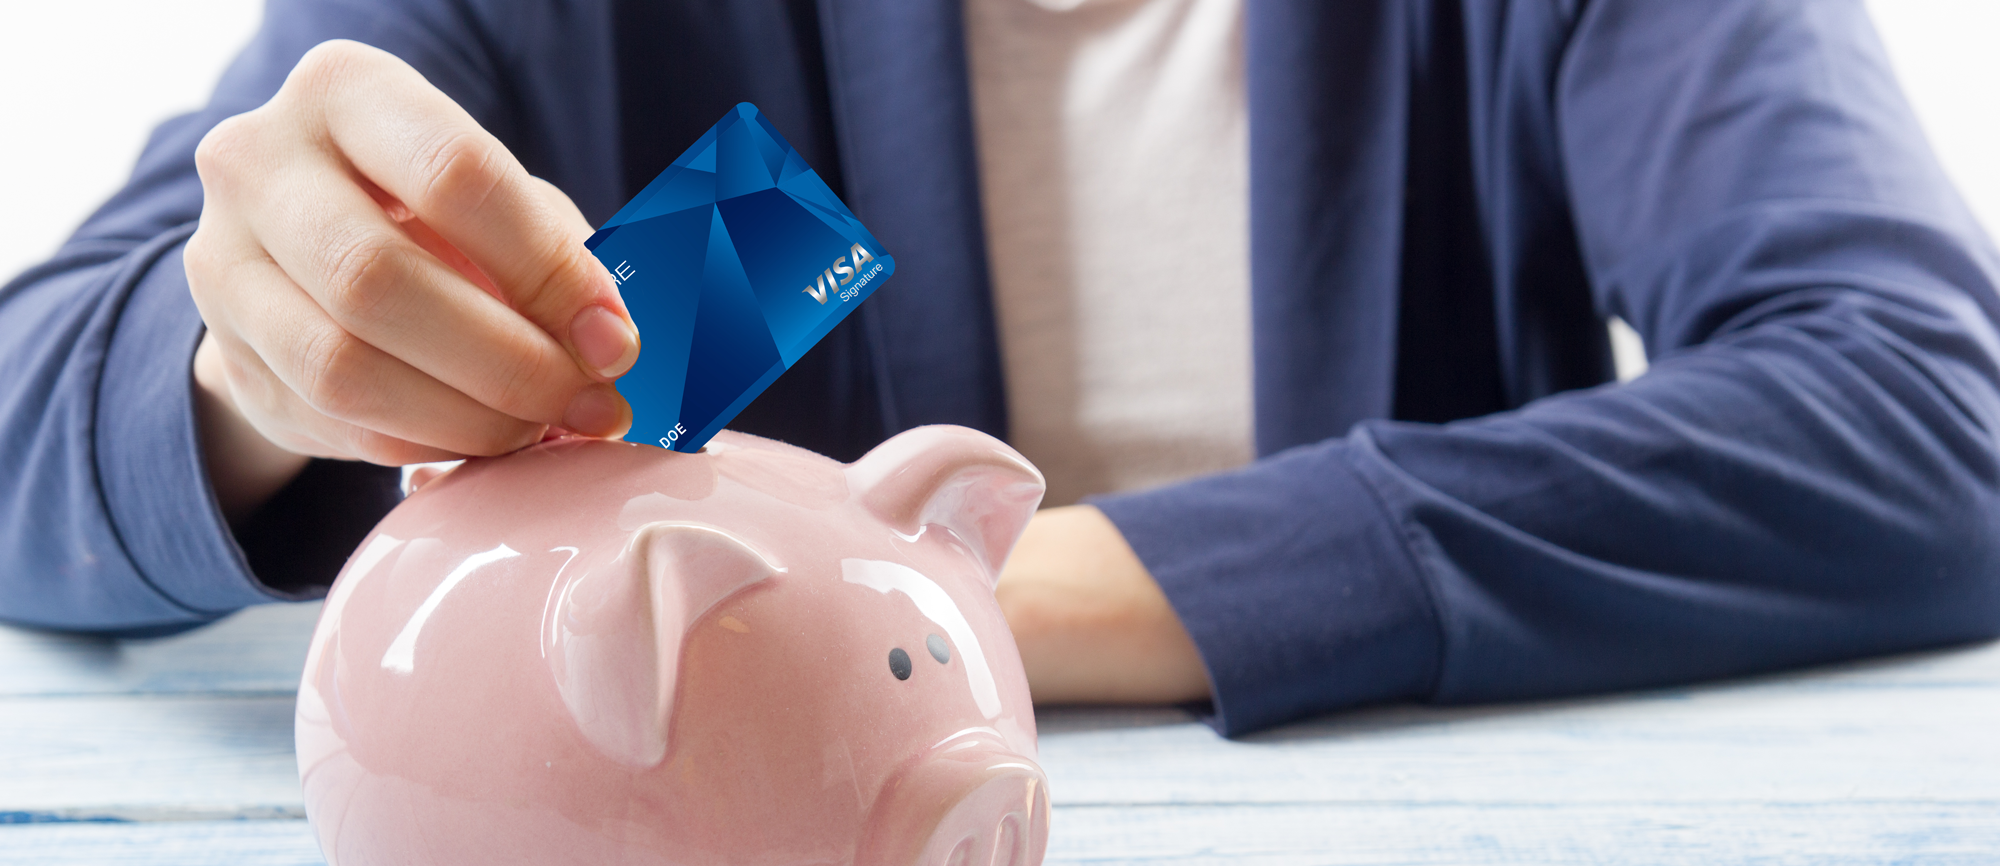 credit cards can help you maximize your savings